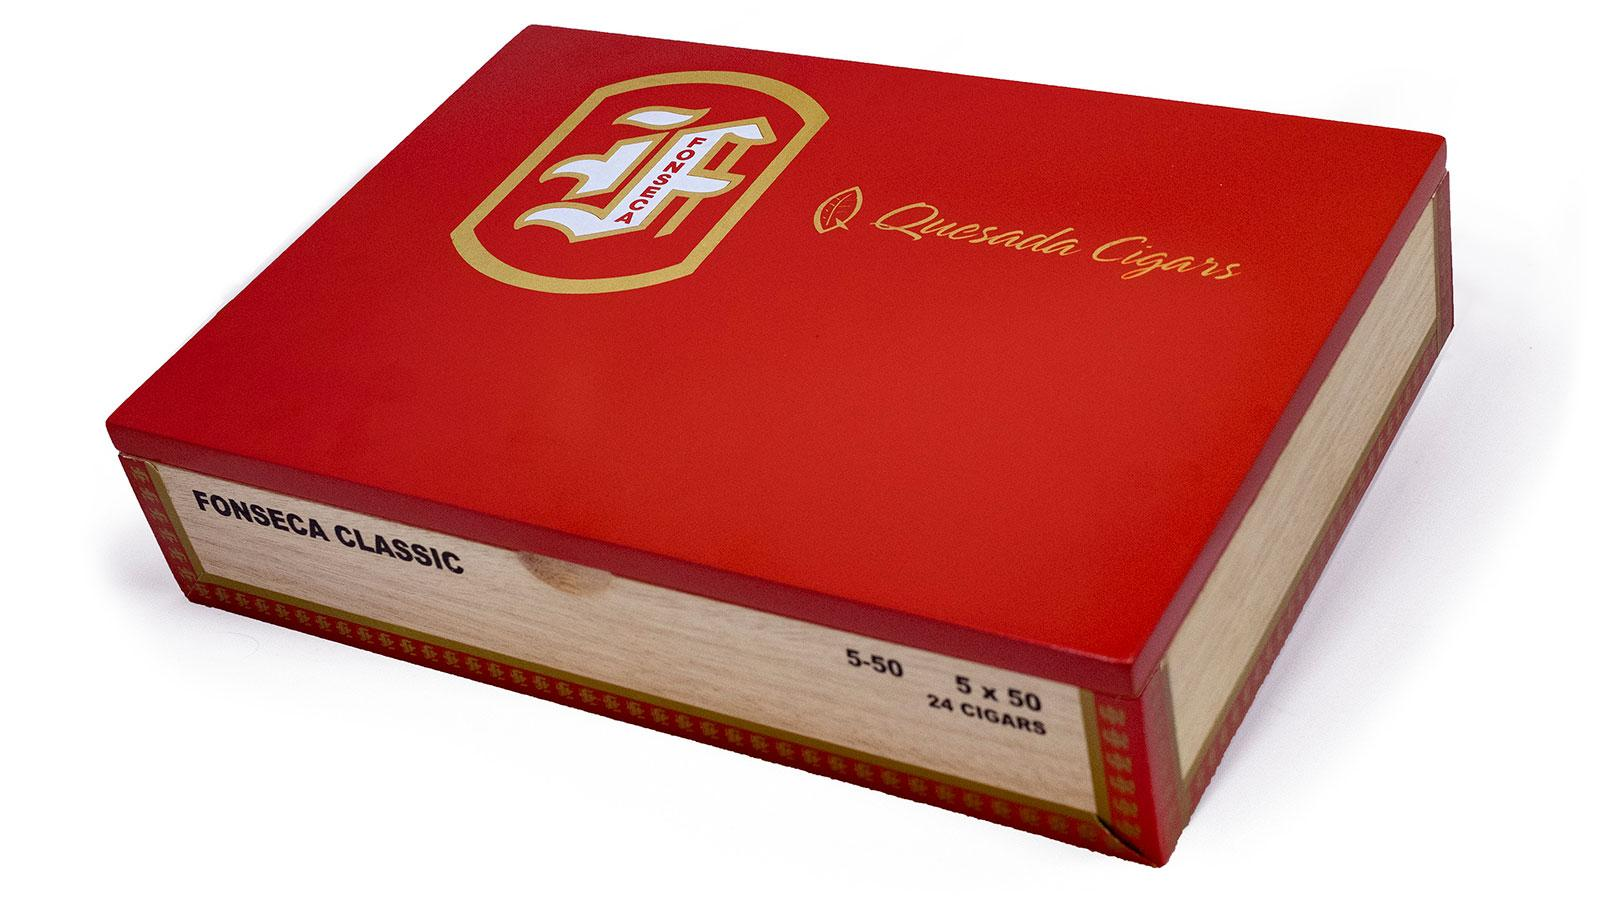 The plain cedar cigar boxes emblazoned with the familiar Fonseca logo have been updated with more modern-looking wooden boxes, complete with a bright red lid.